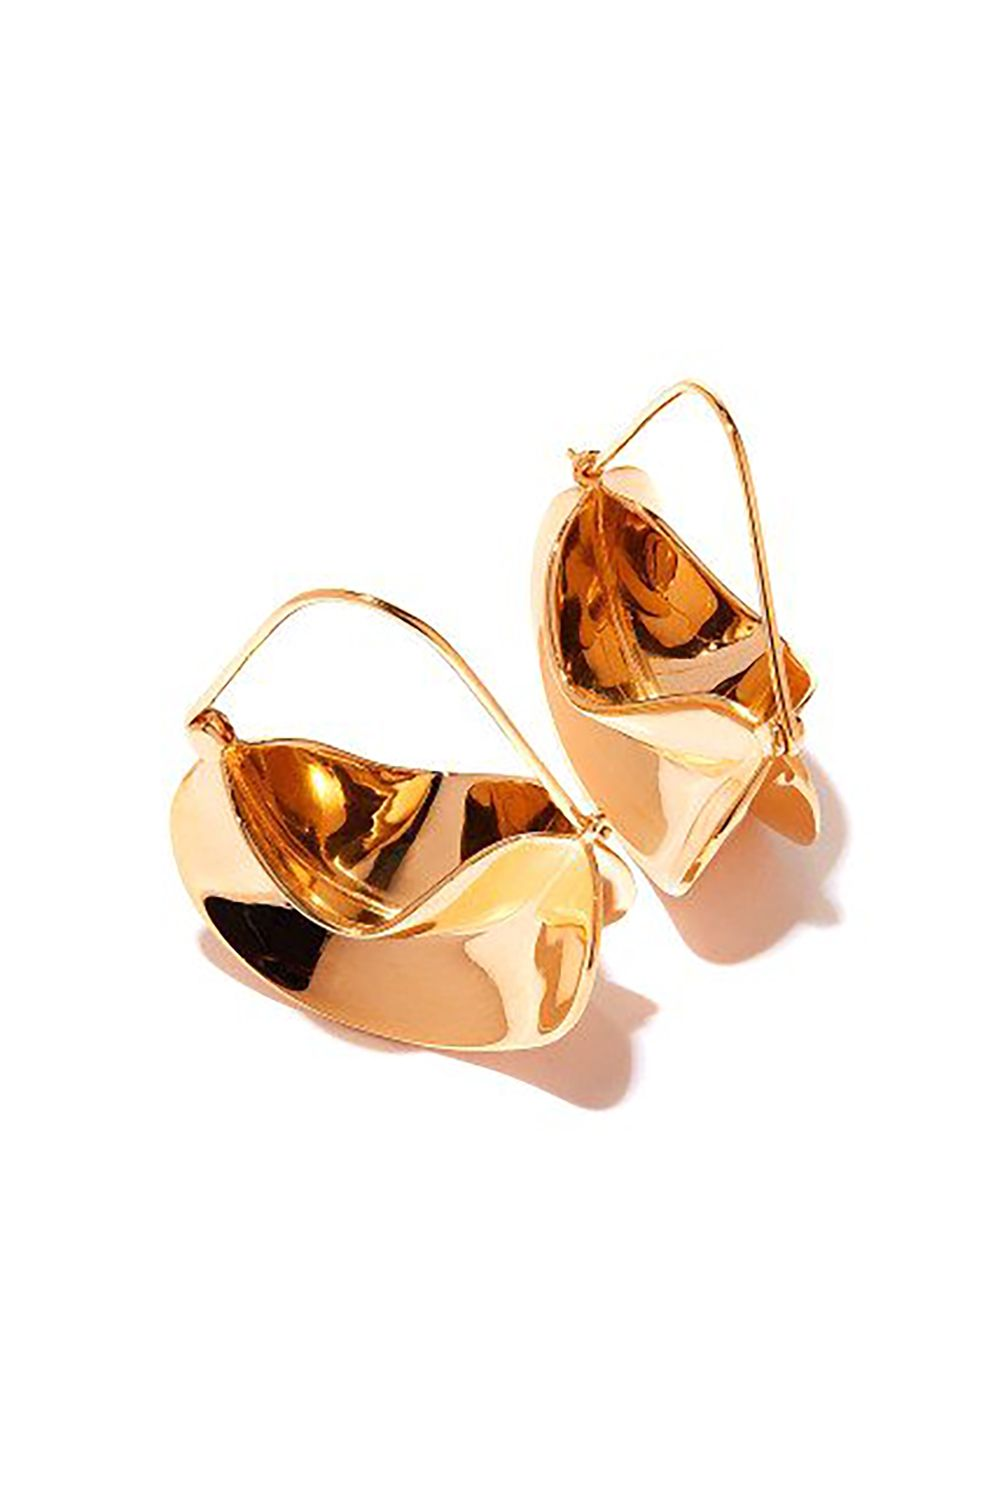 "<p>These are meant to be baskets (not fortune cookies), but what's to stop you from carrying secret gummy bears in them, no matter what they are? </p><p>$474, <a href=""http://anissakermiche.com/product/paniers-dores-earrings/"" target=""_blank"">anissakermiche.com</a>.</p>"